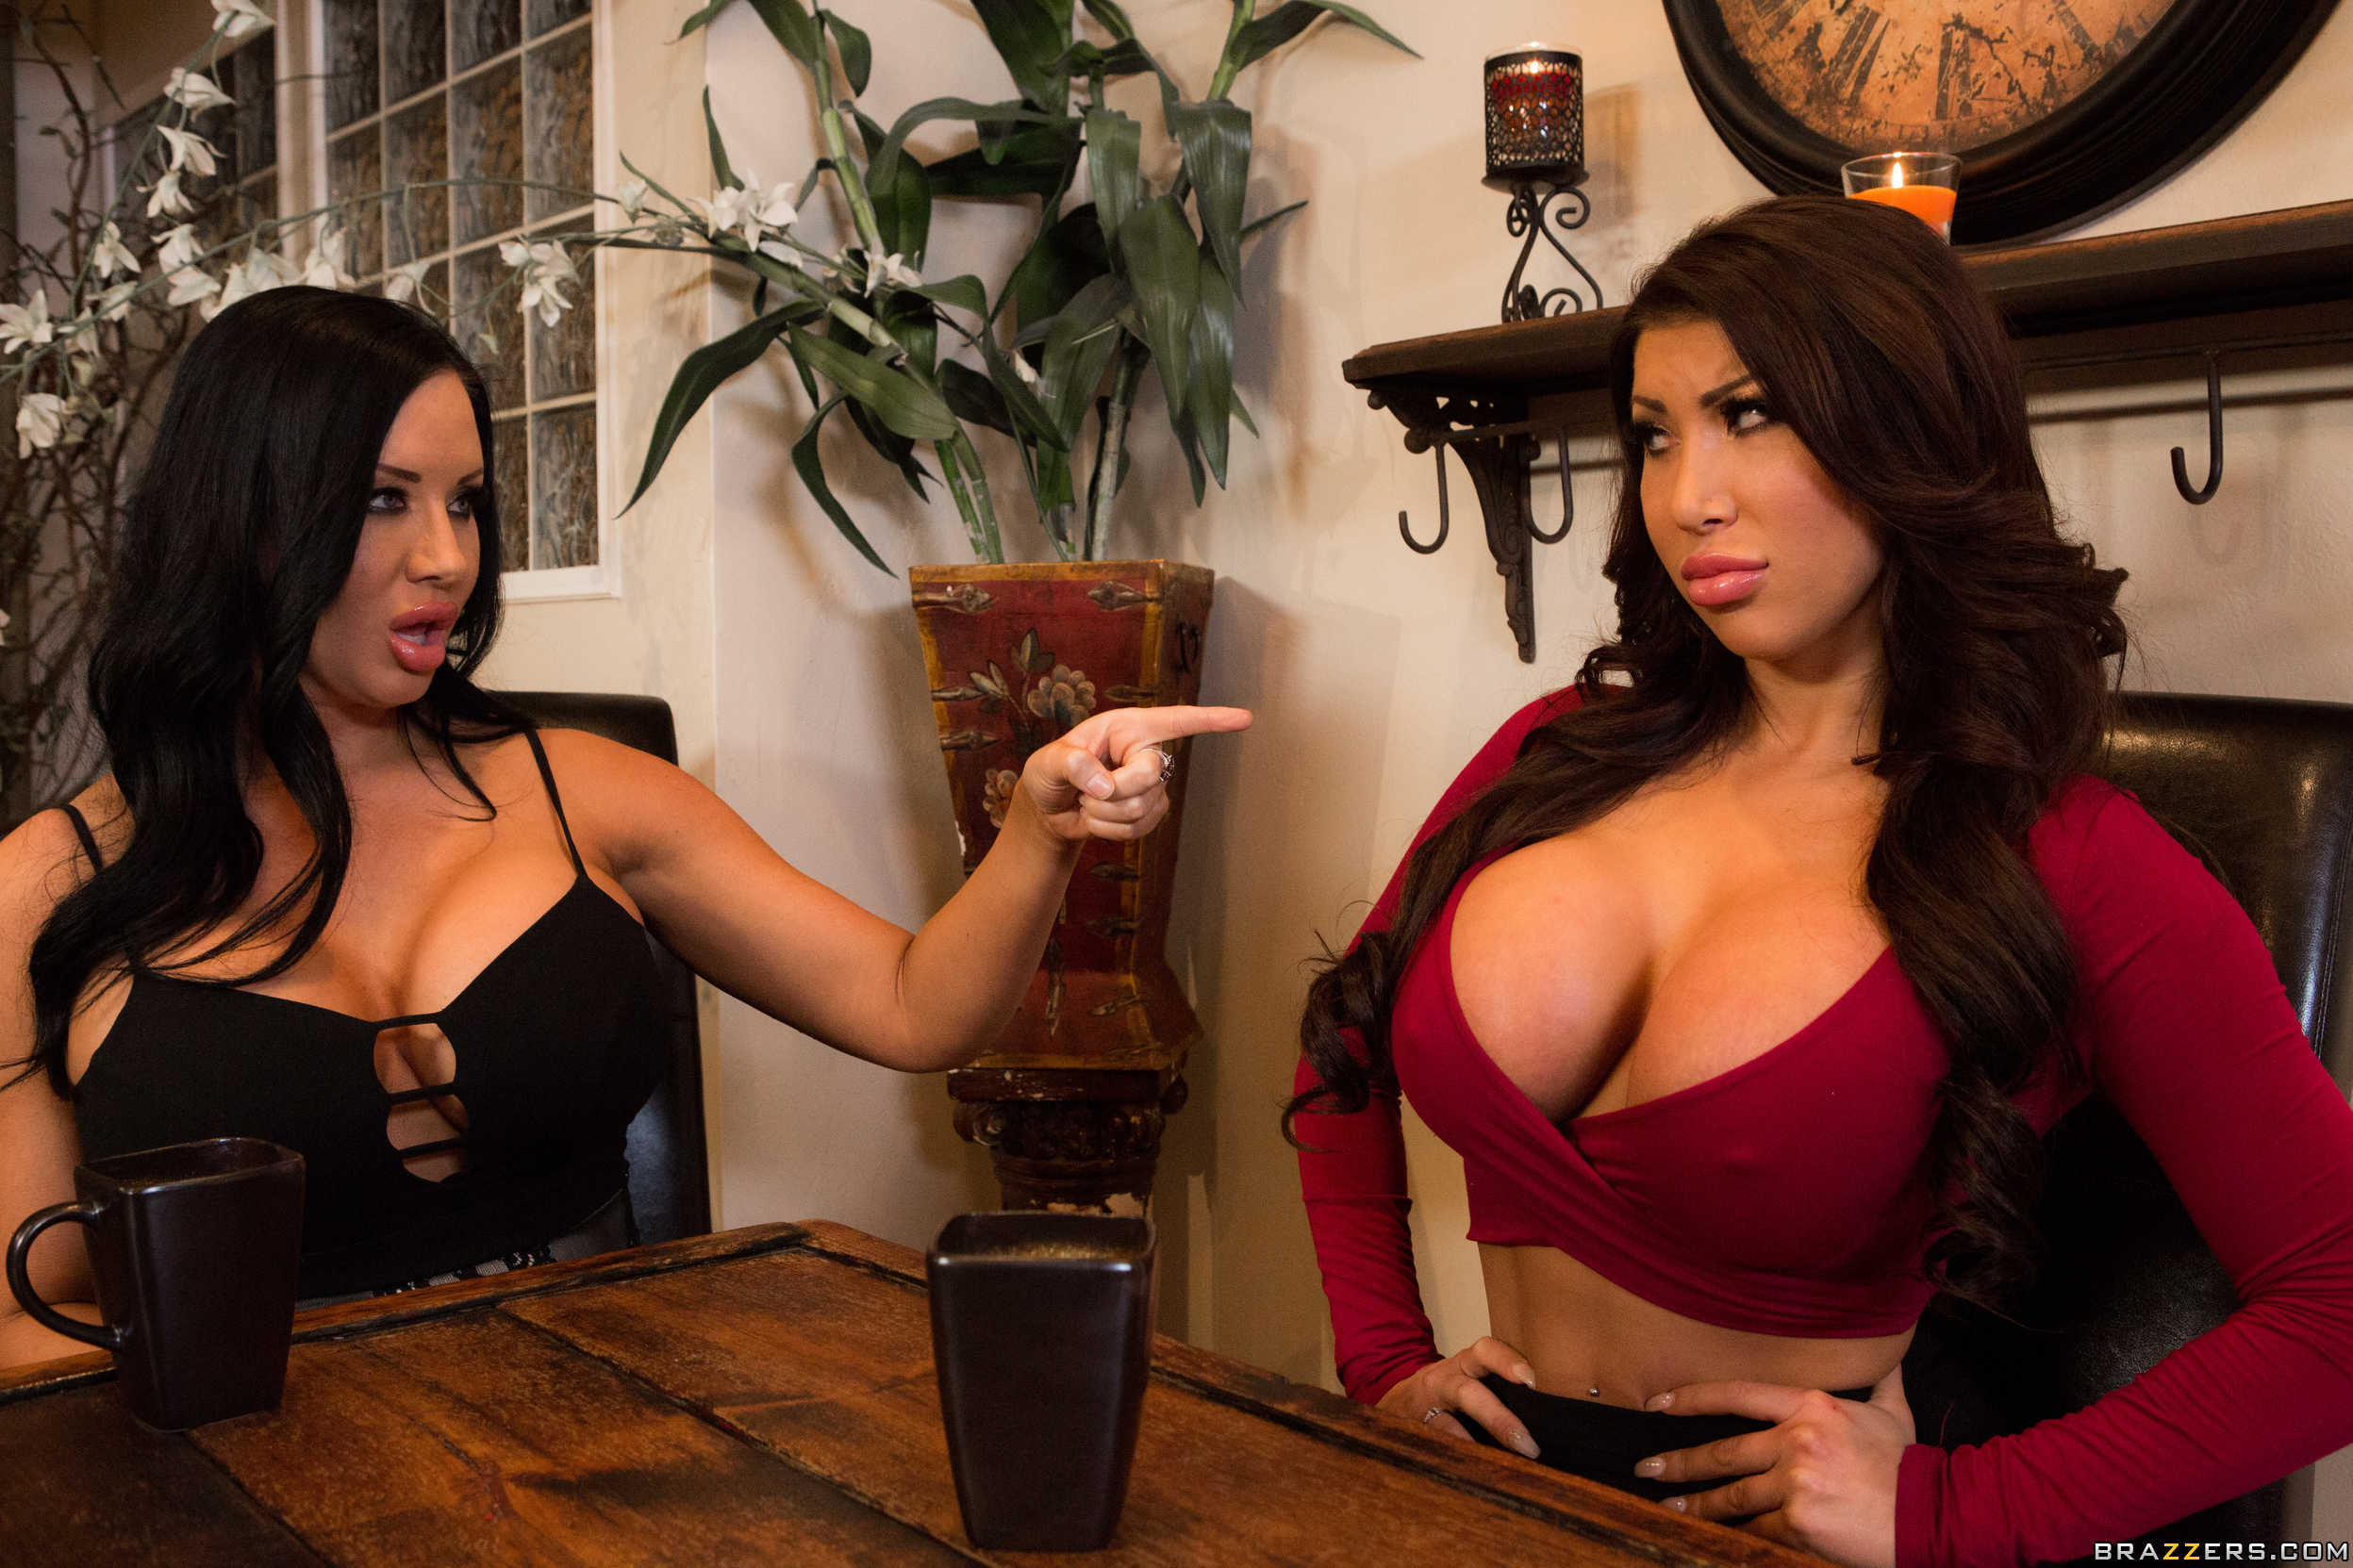 Charlyse bella and erica fontes threesome sex 10